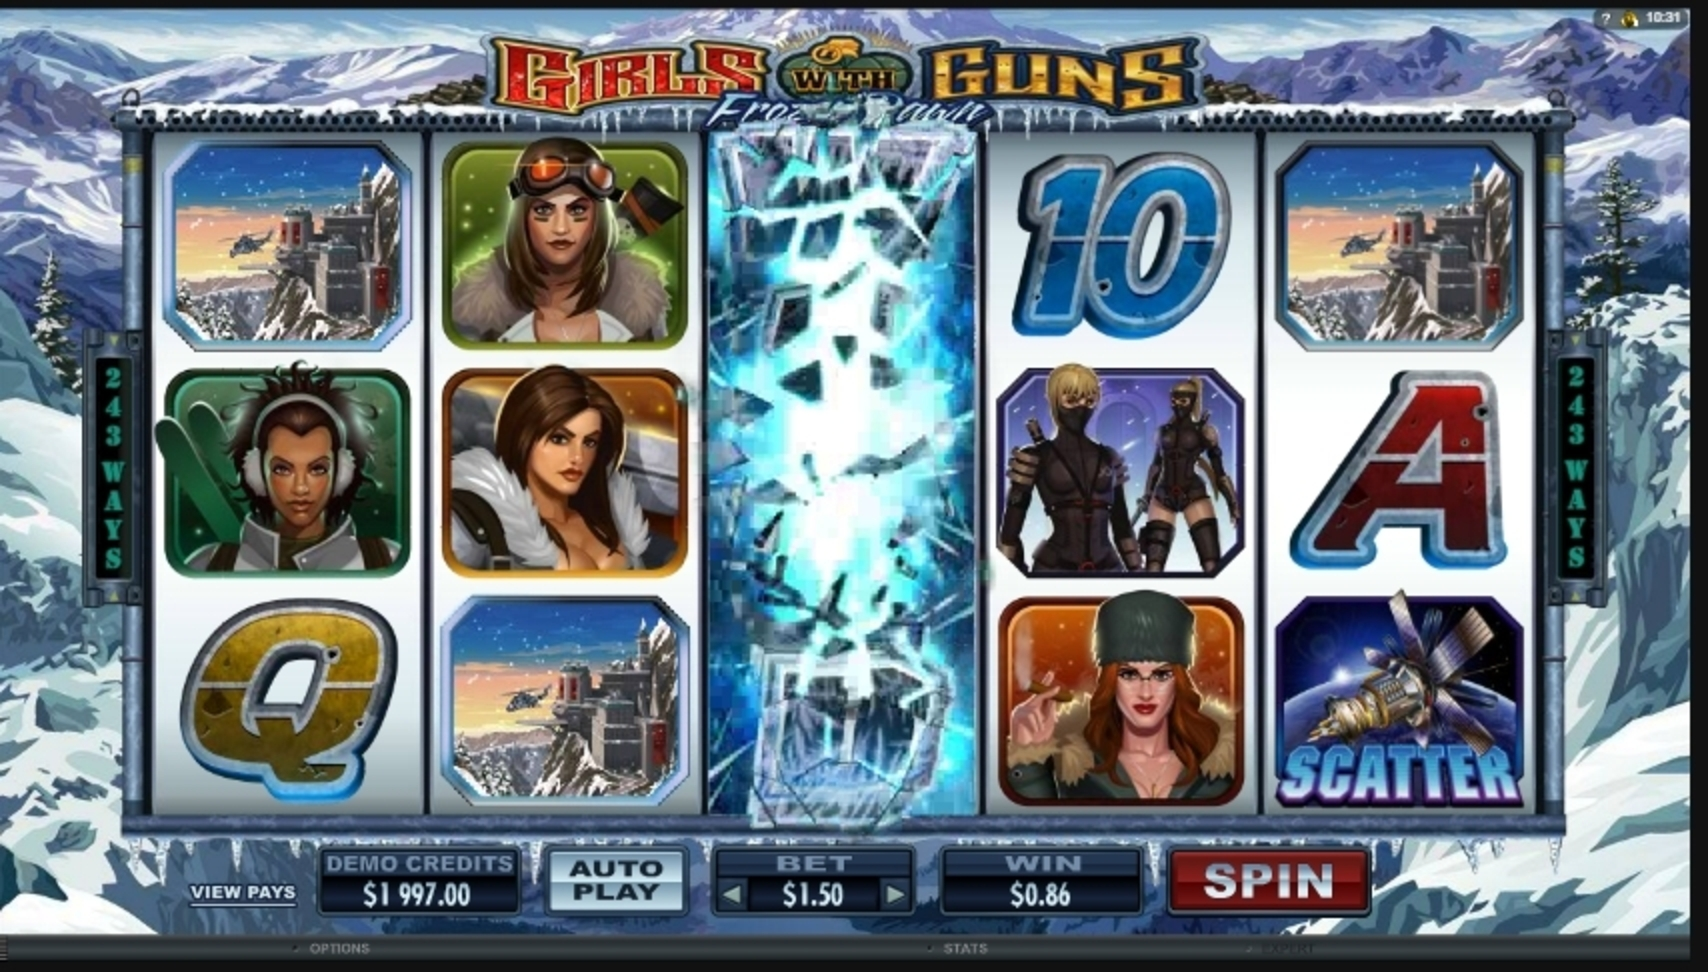 Win Money in Girls With Guns - Frozen Dawn Free Slot Game by Microgaming